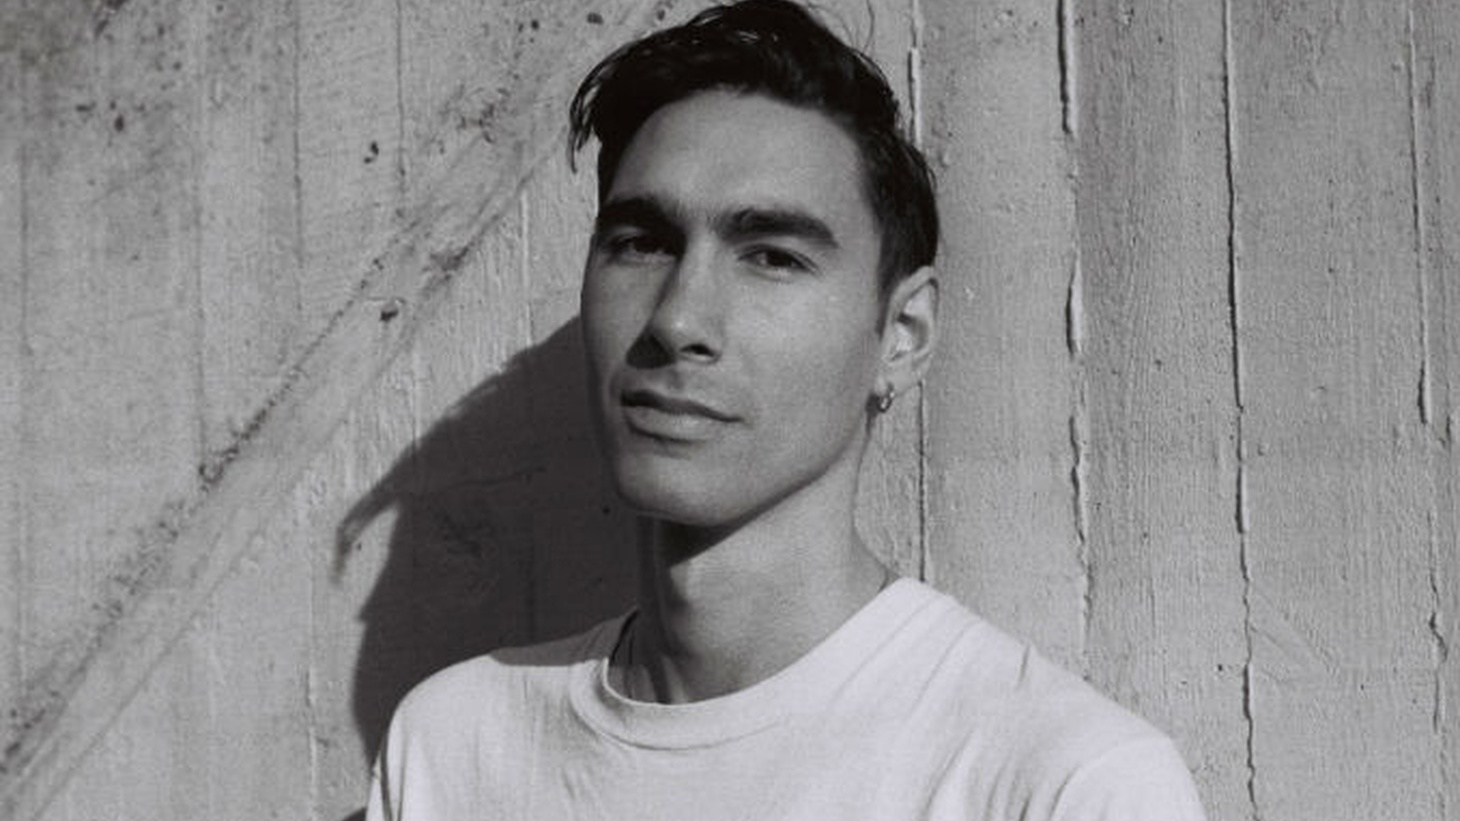 London-based, New Wave-flavored crooner Oscar Scheller writes catchy pop songs that could easily fit the likes of Morrissey or the Magnetic Fields. But Oscar makes them all his own in seemingly effortless fashion.